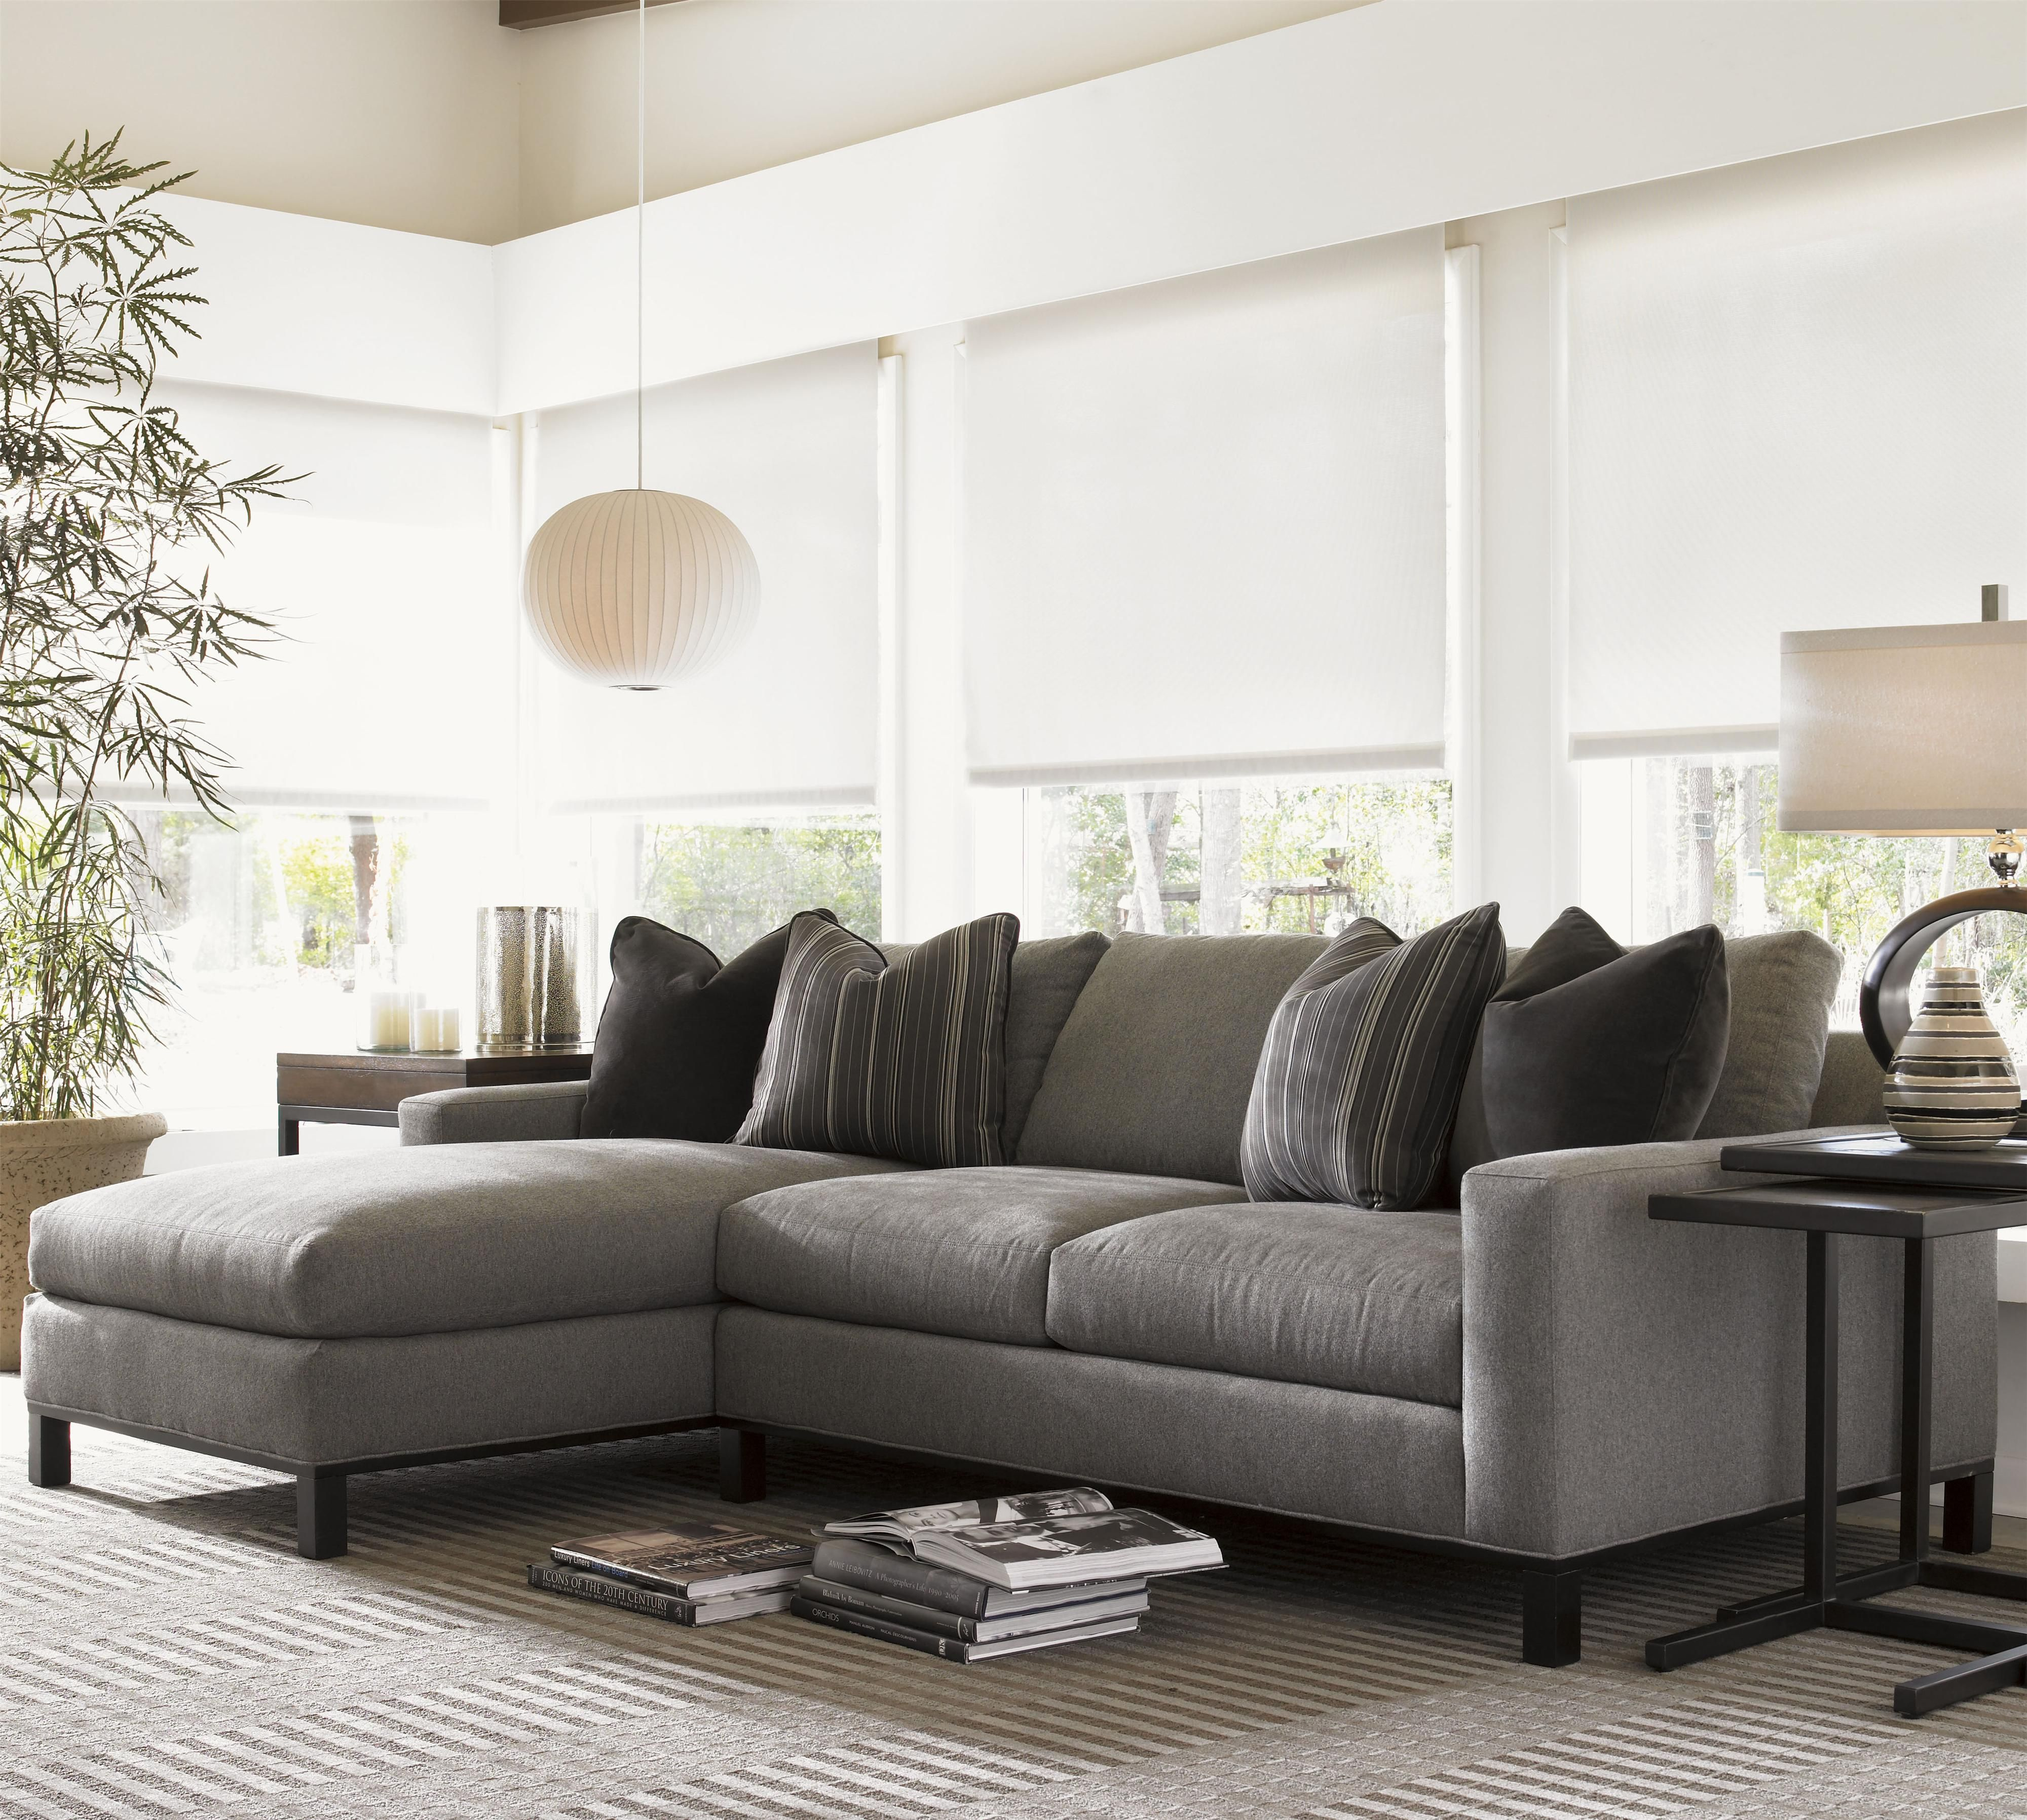 11 South 2 Piece Upholstered Chronicle Sectional By Lexington Home Brands Design Interiors